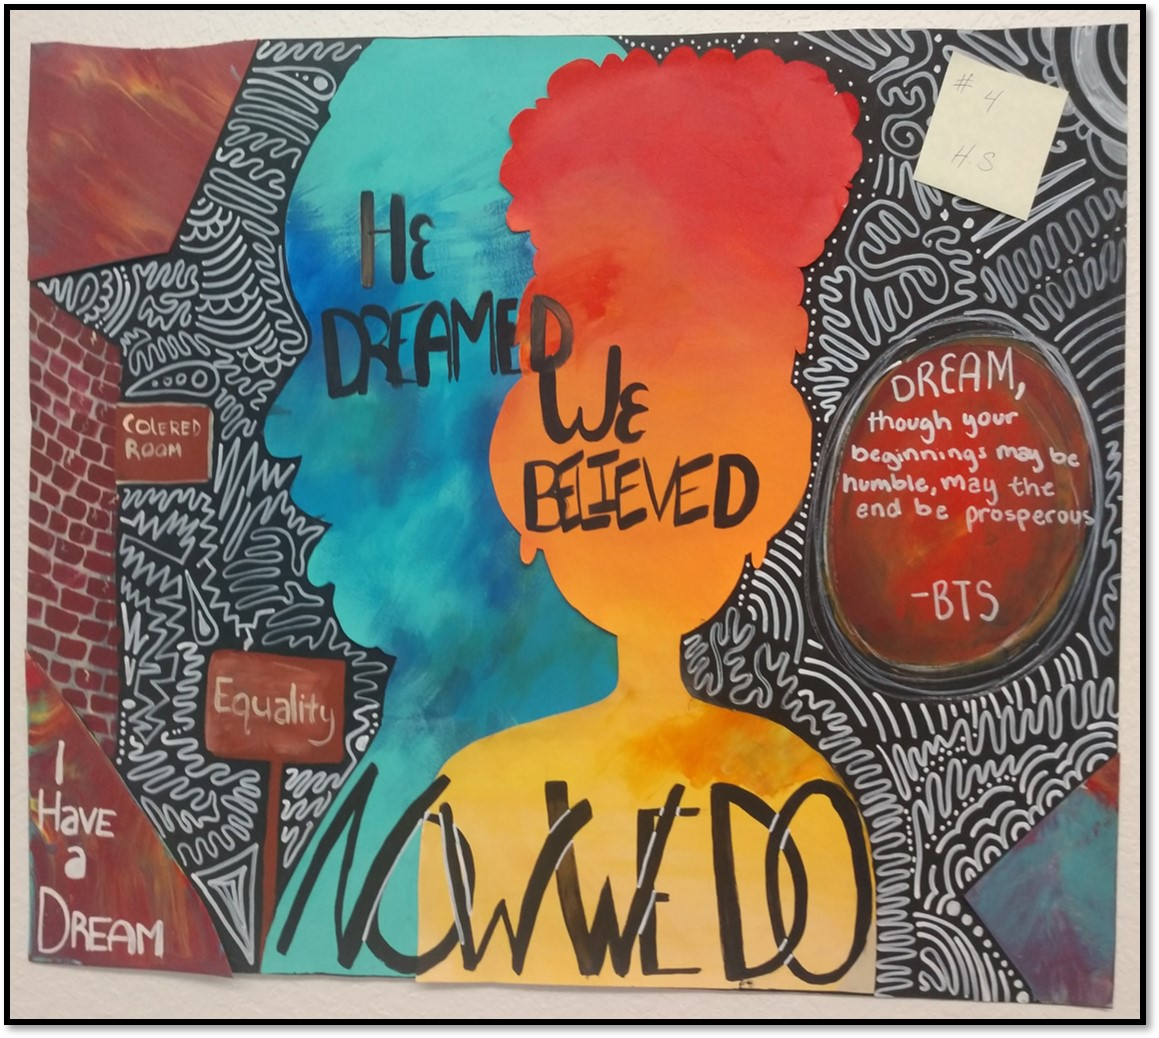 Kayli Peazant's winning poster from the MLK, Jr. Poster Contest